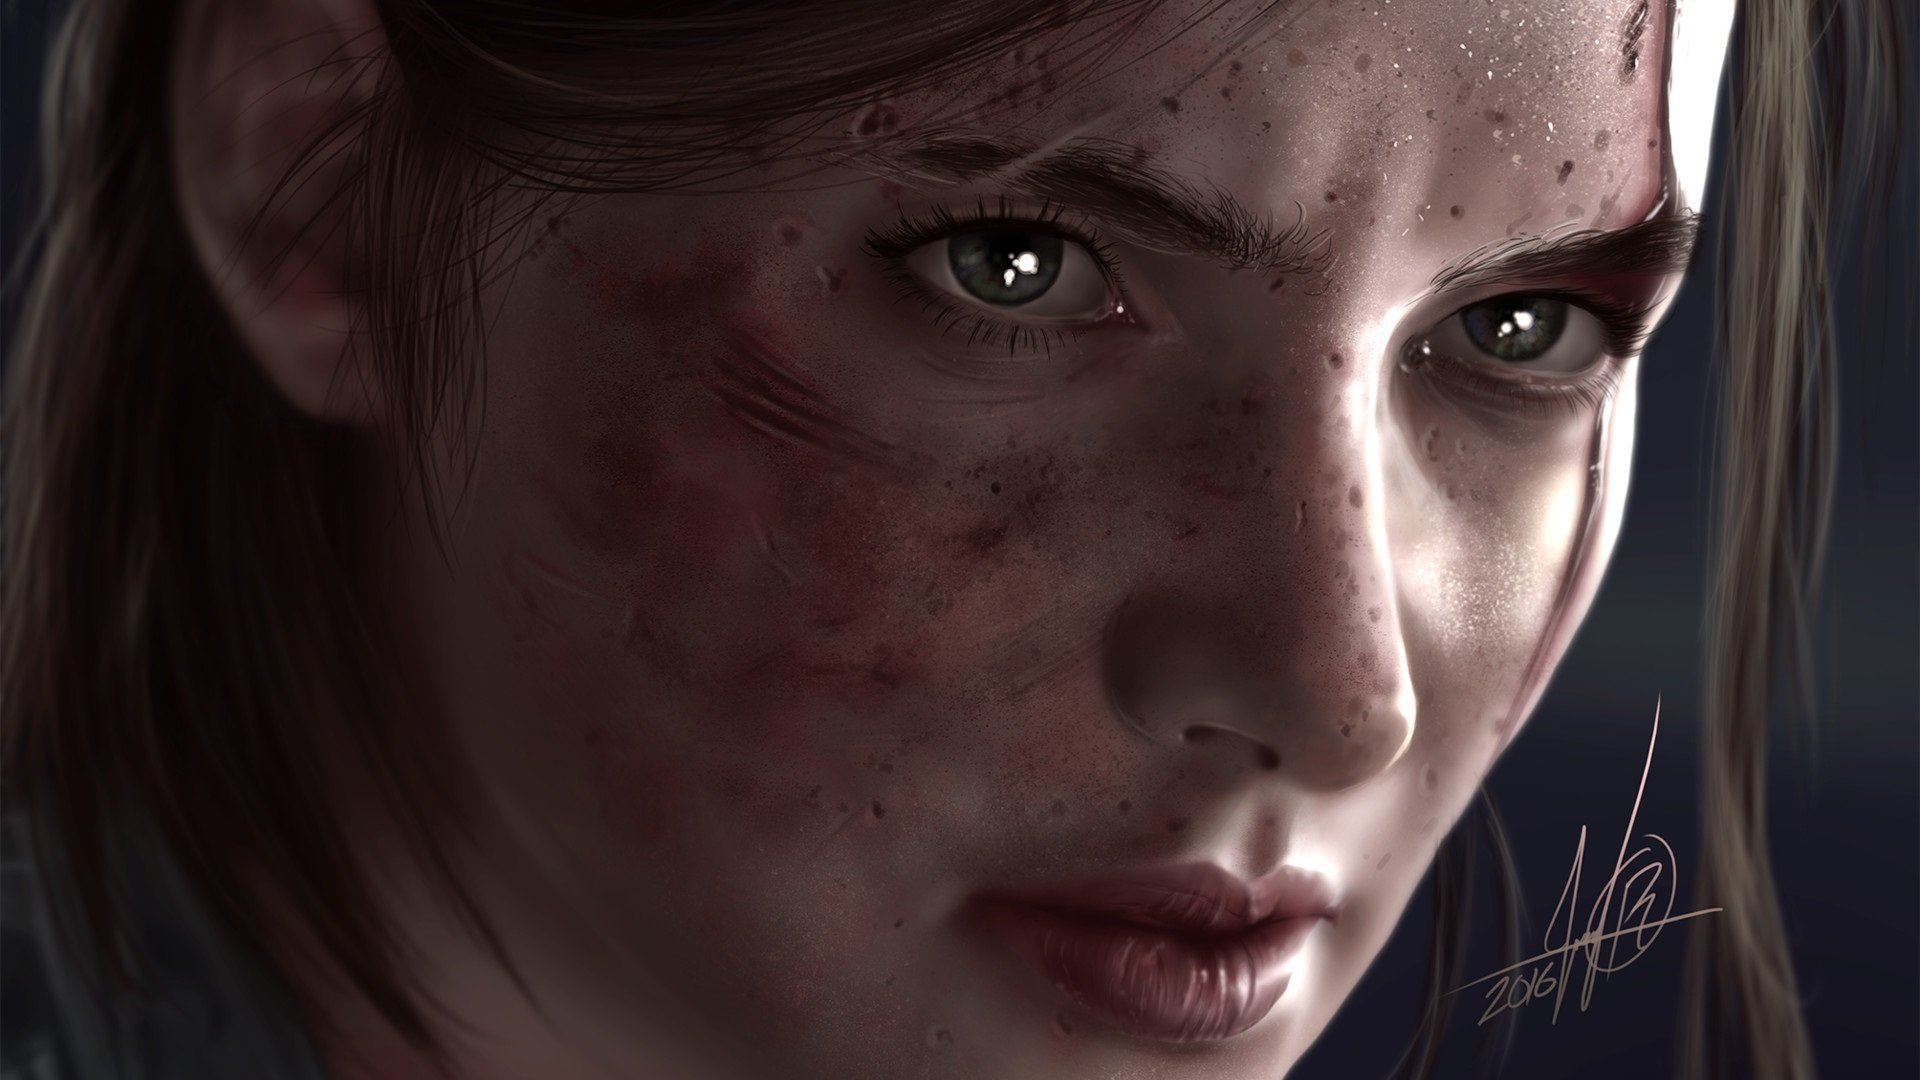 The last of us part ii hd wallpaper background image 1920x1080 id 788048 wallpaper abyss - The last of us wallpaper ...